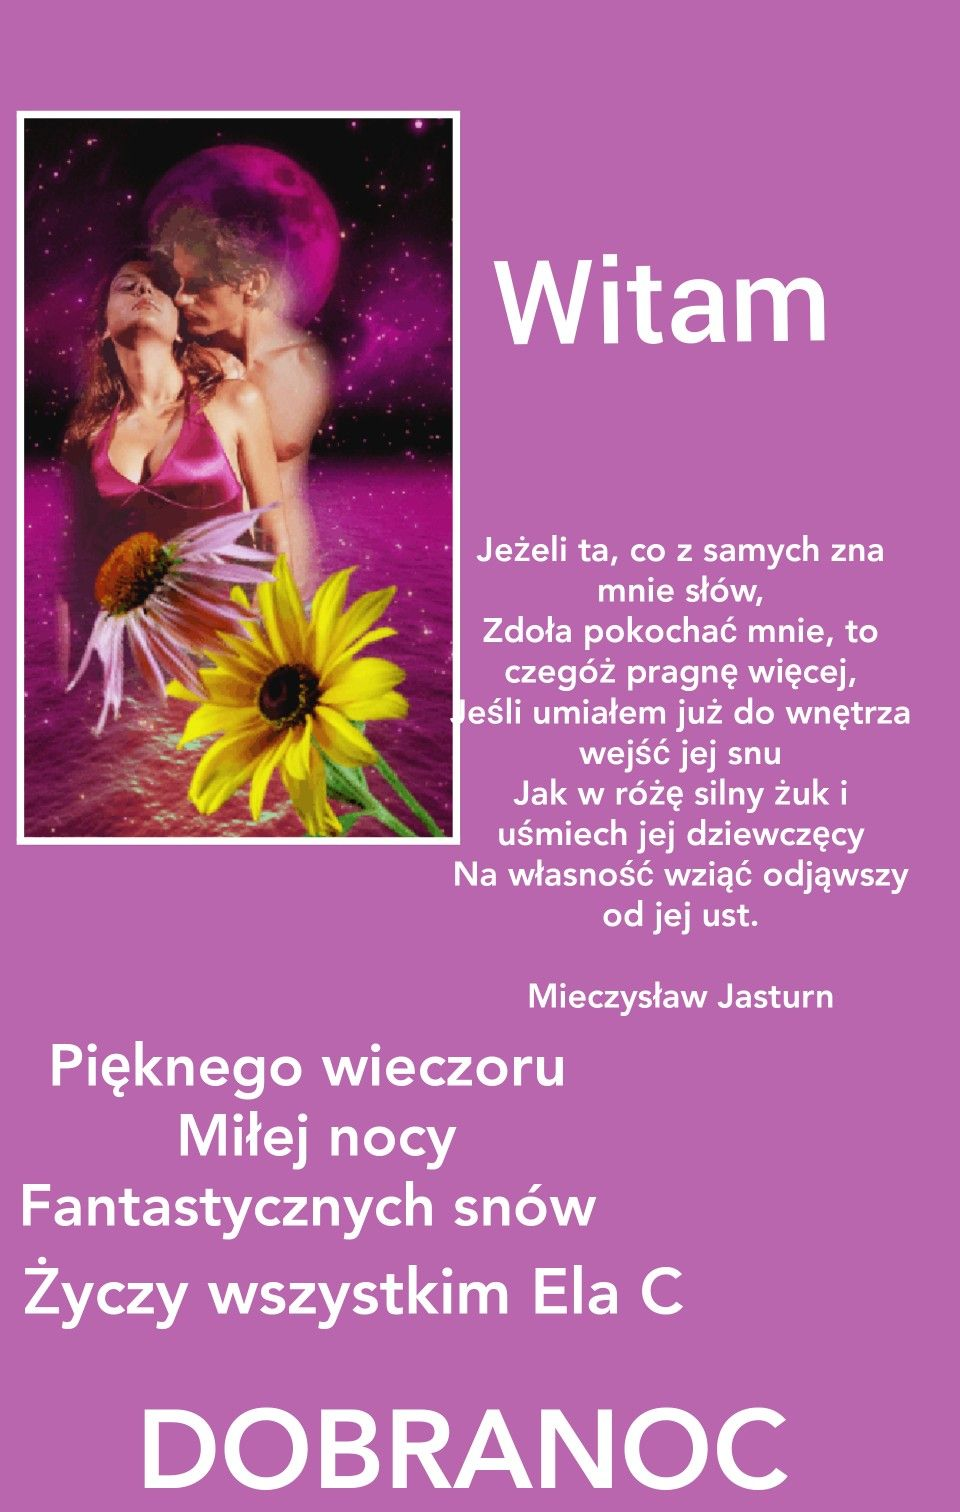 Pin By Elzbieta Cyron On Dobranoc With Images Roze Dobranoc